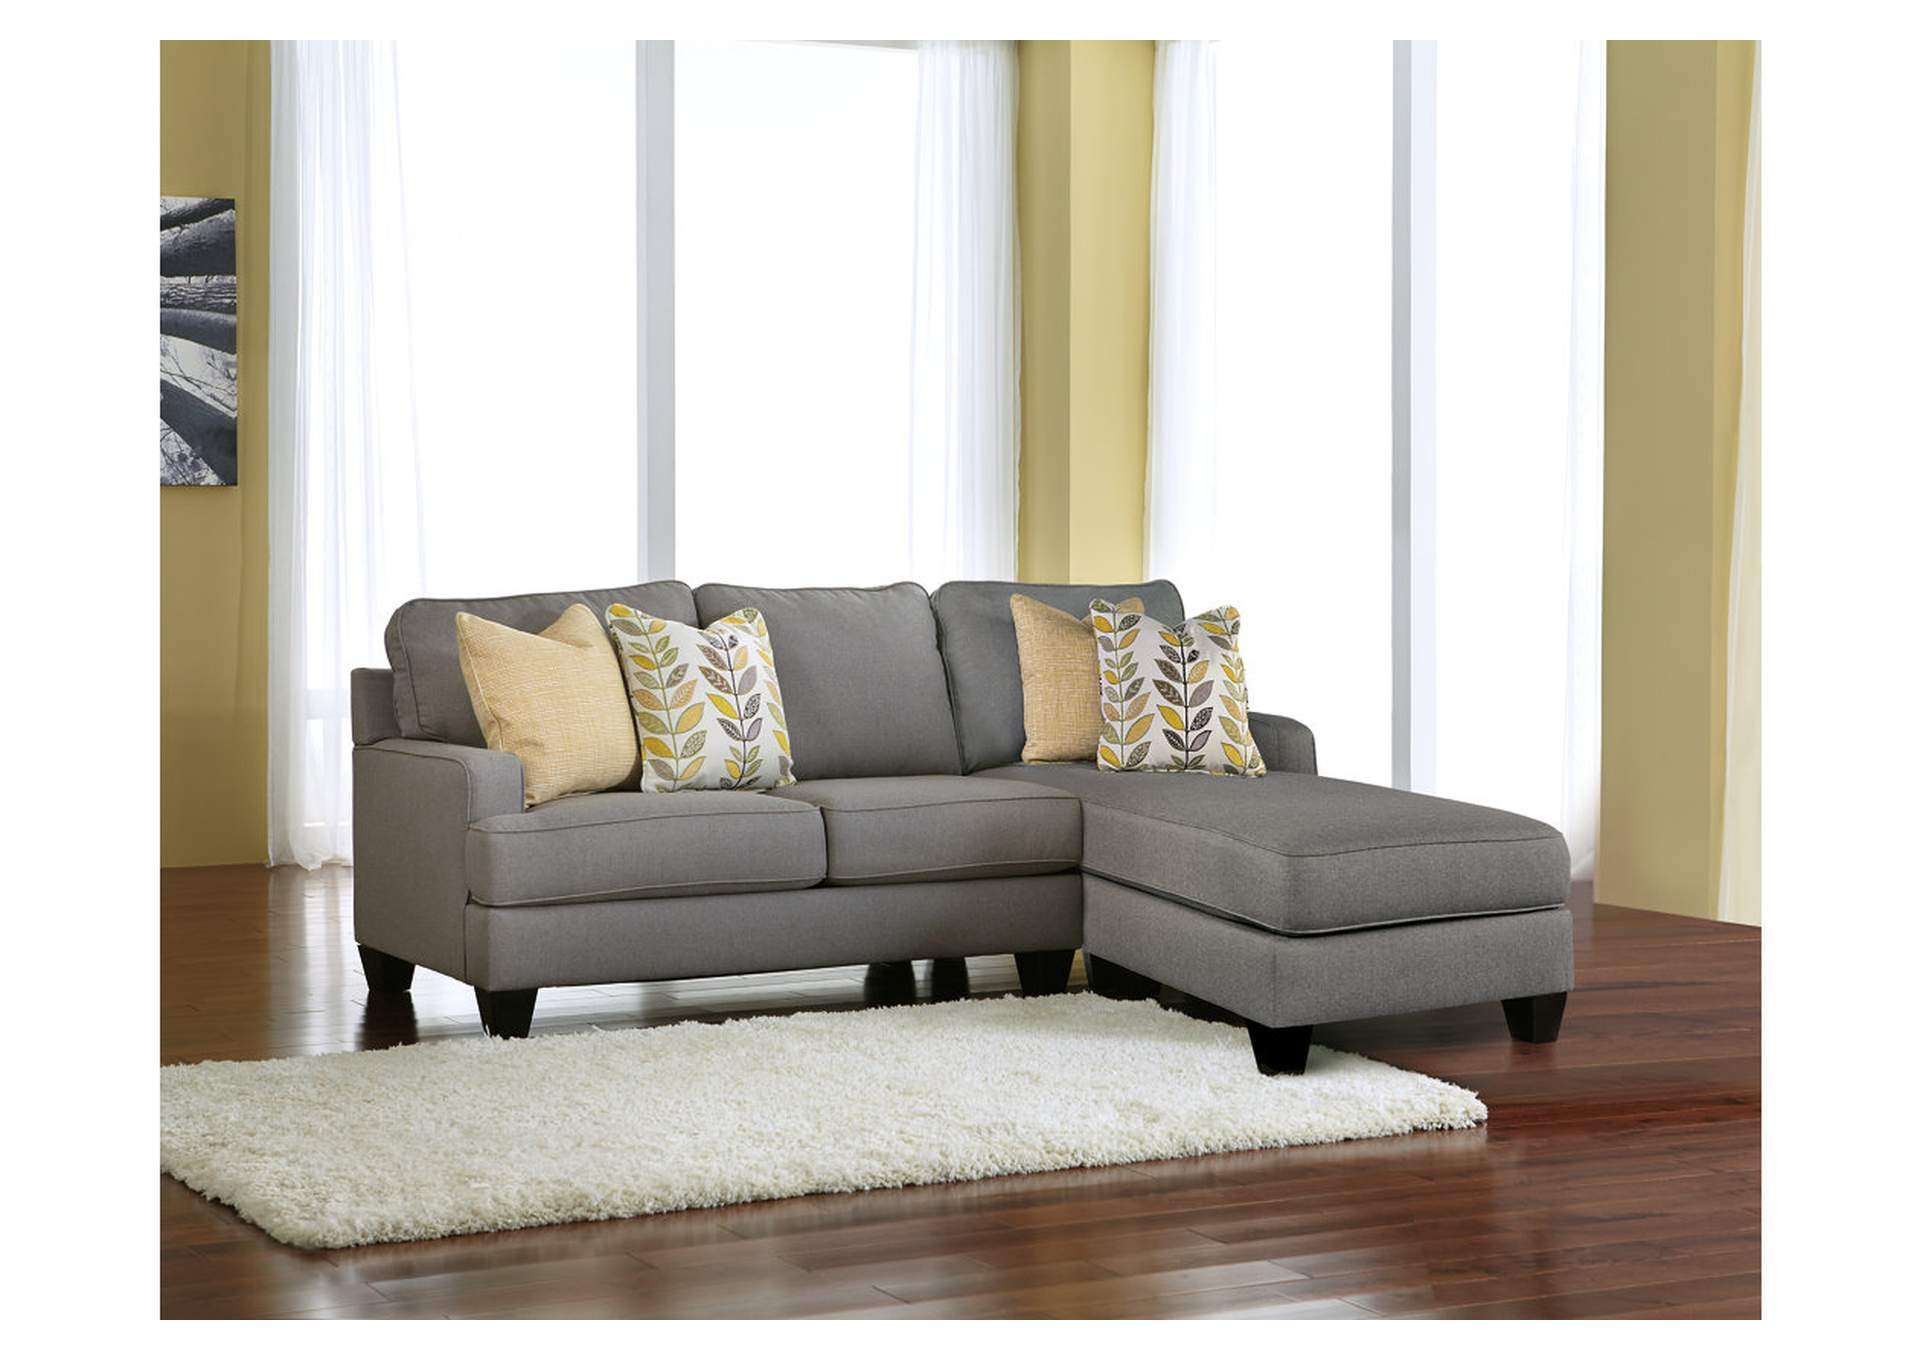 Alabama furniture market chamberly alloy chaise end sectional for Ashley sofa chaise